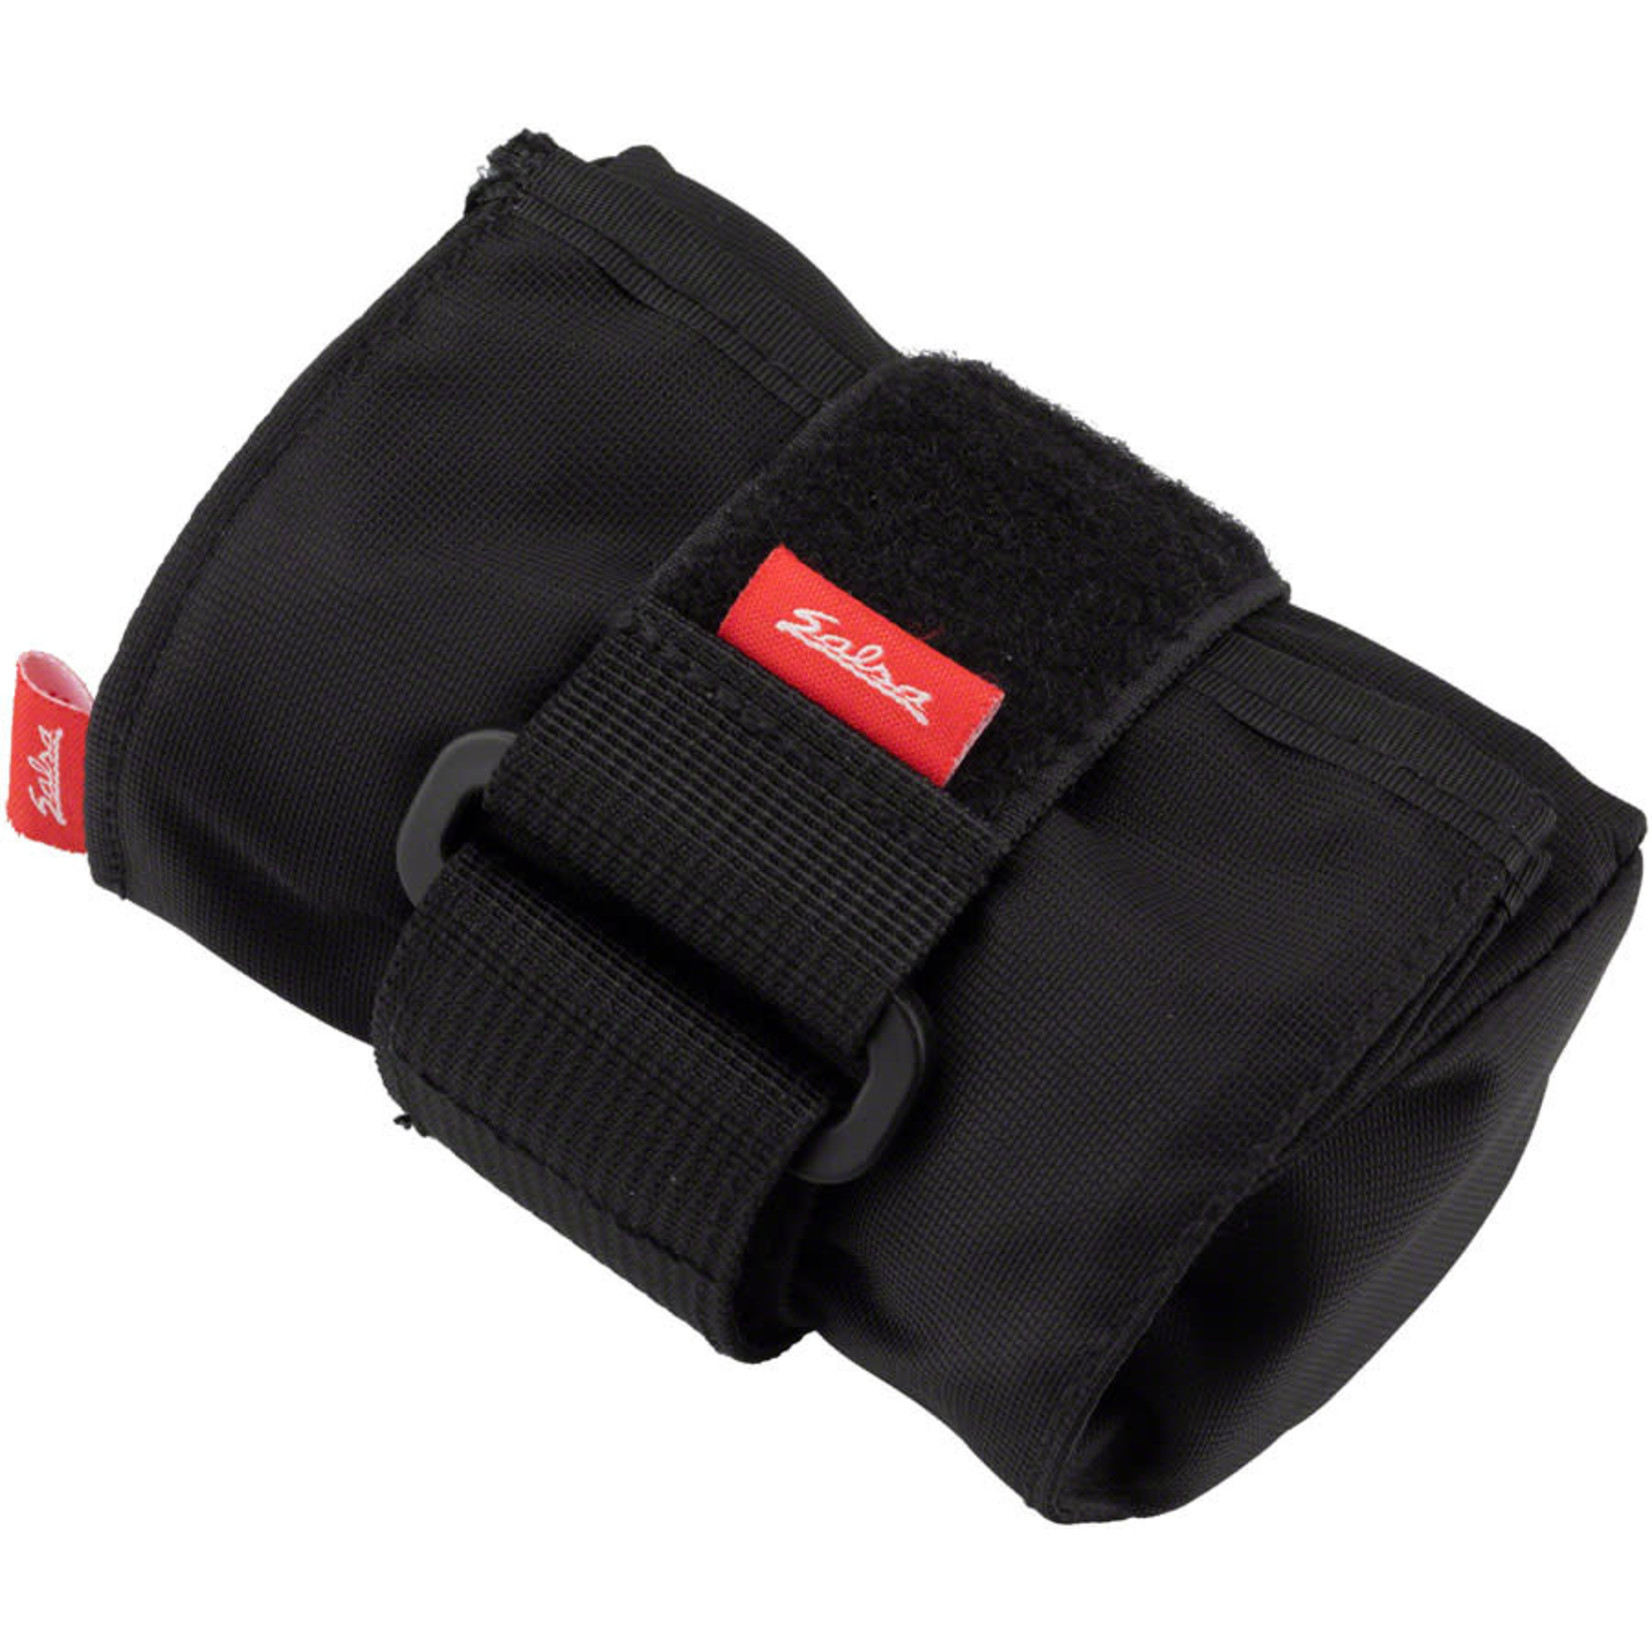 Salsa Salsa Anything Bracket Mini with Strap and Pack: Black